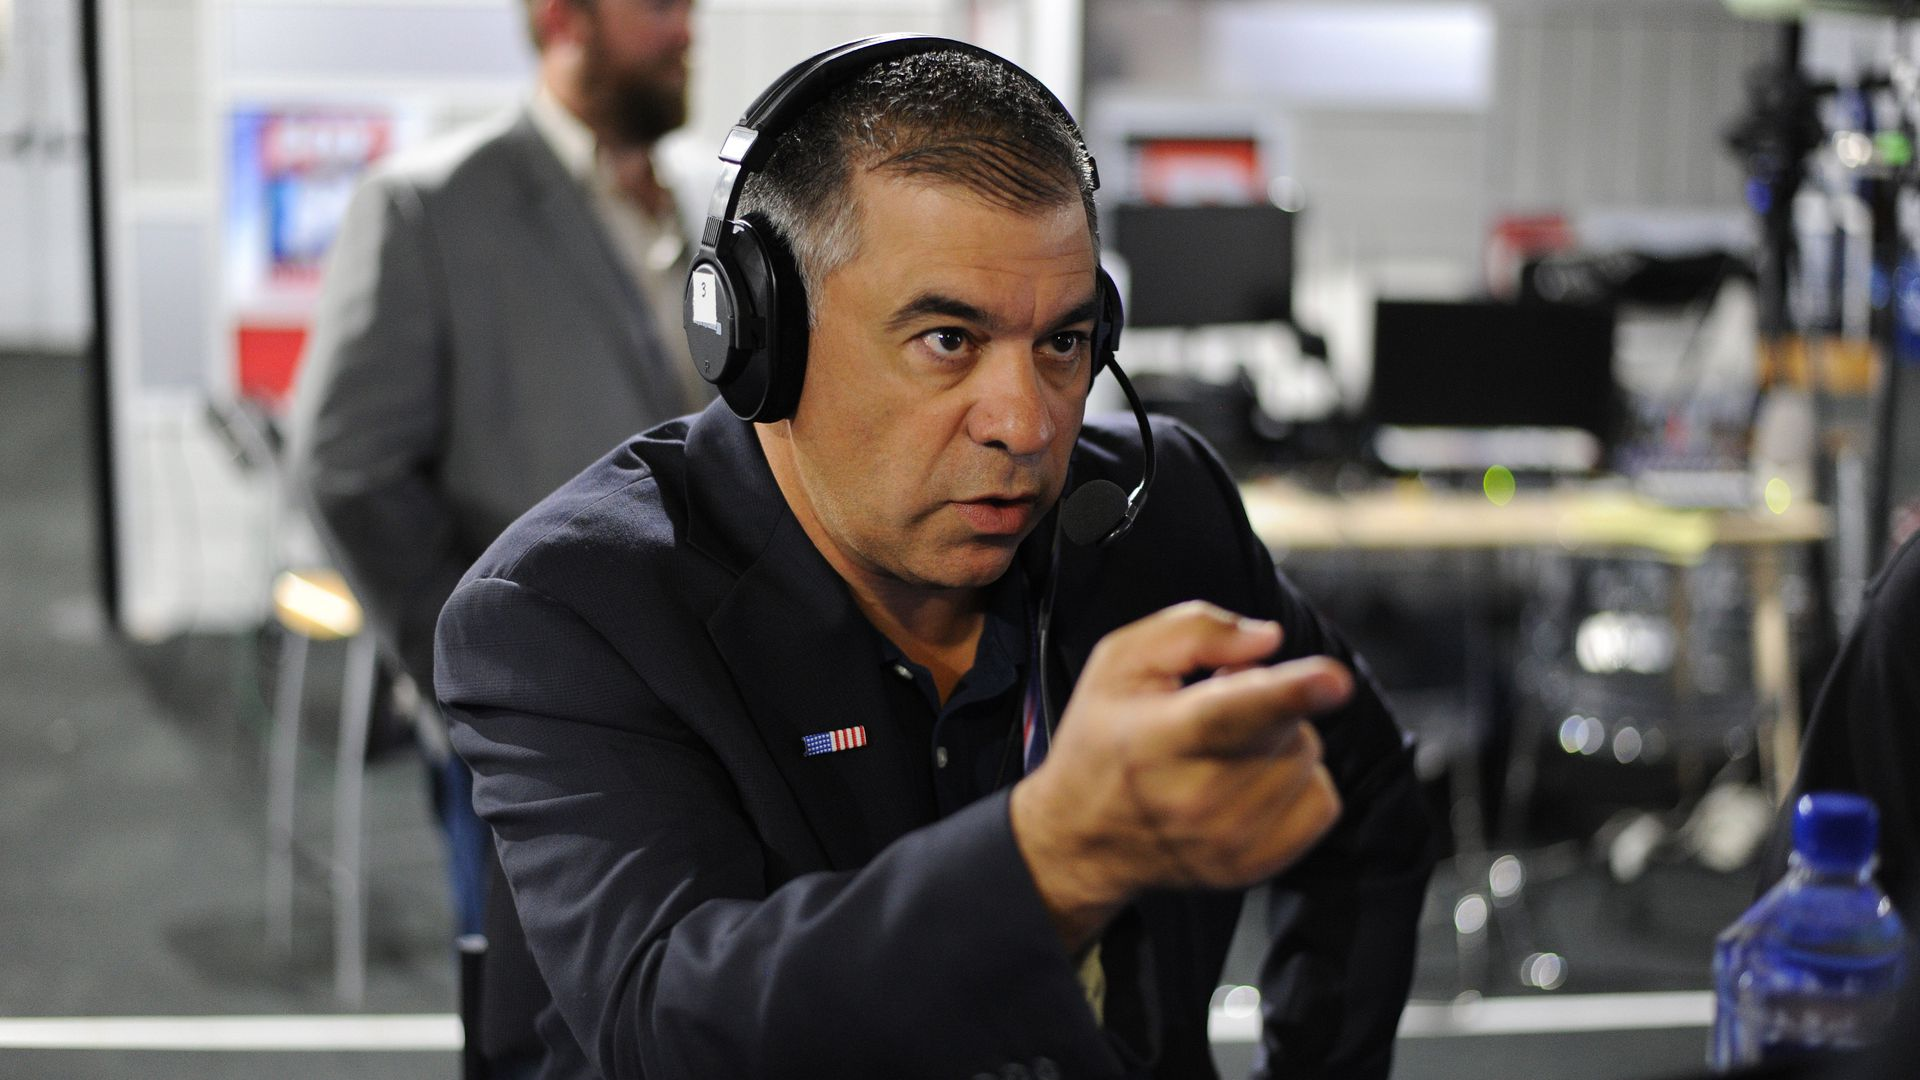 David Bossie. Photo: Ben Jackson/Getty Images for SiriusXM